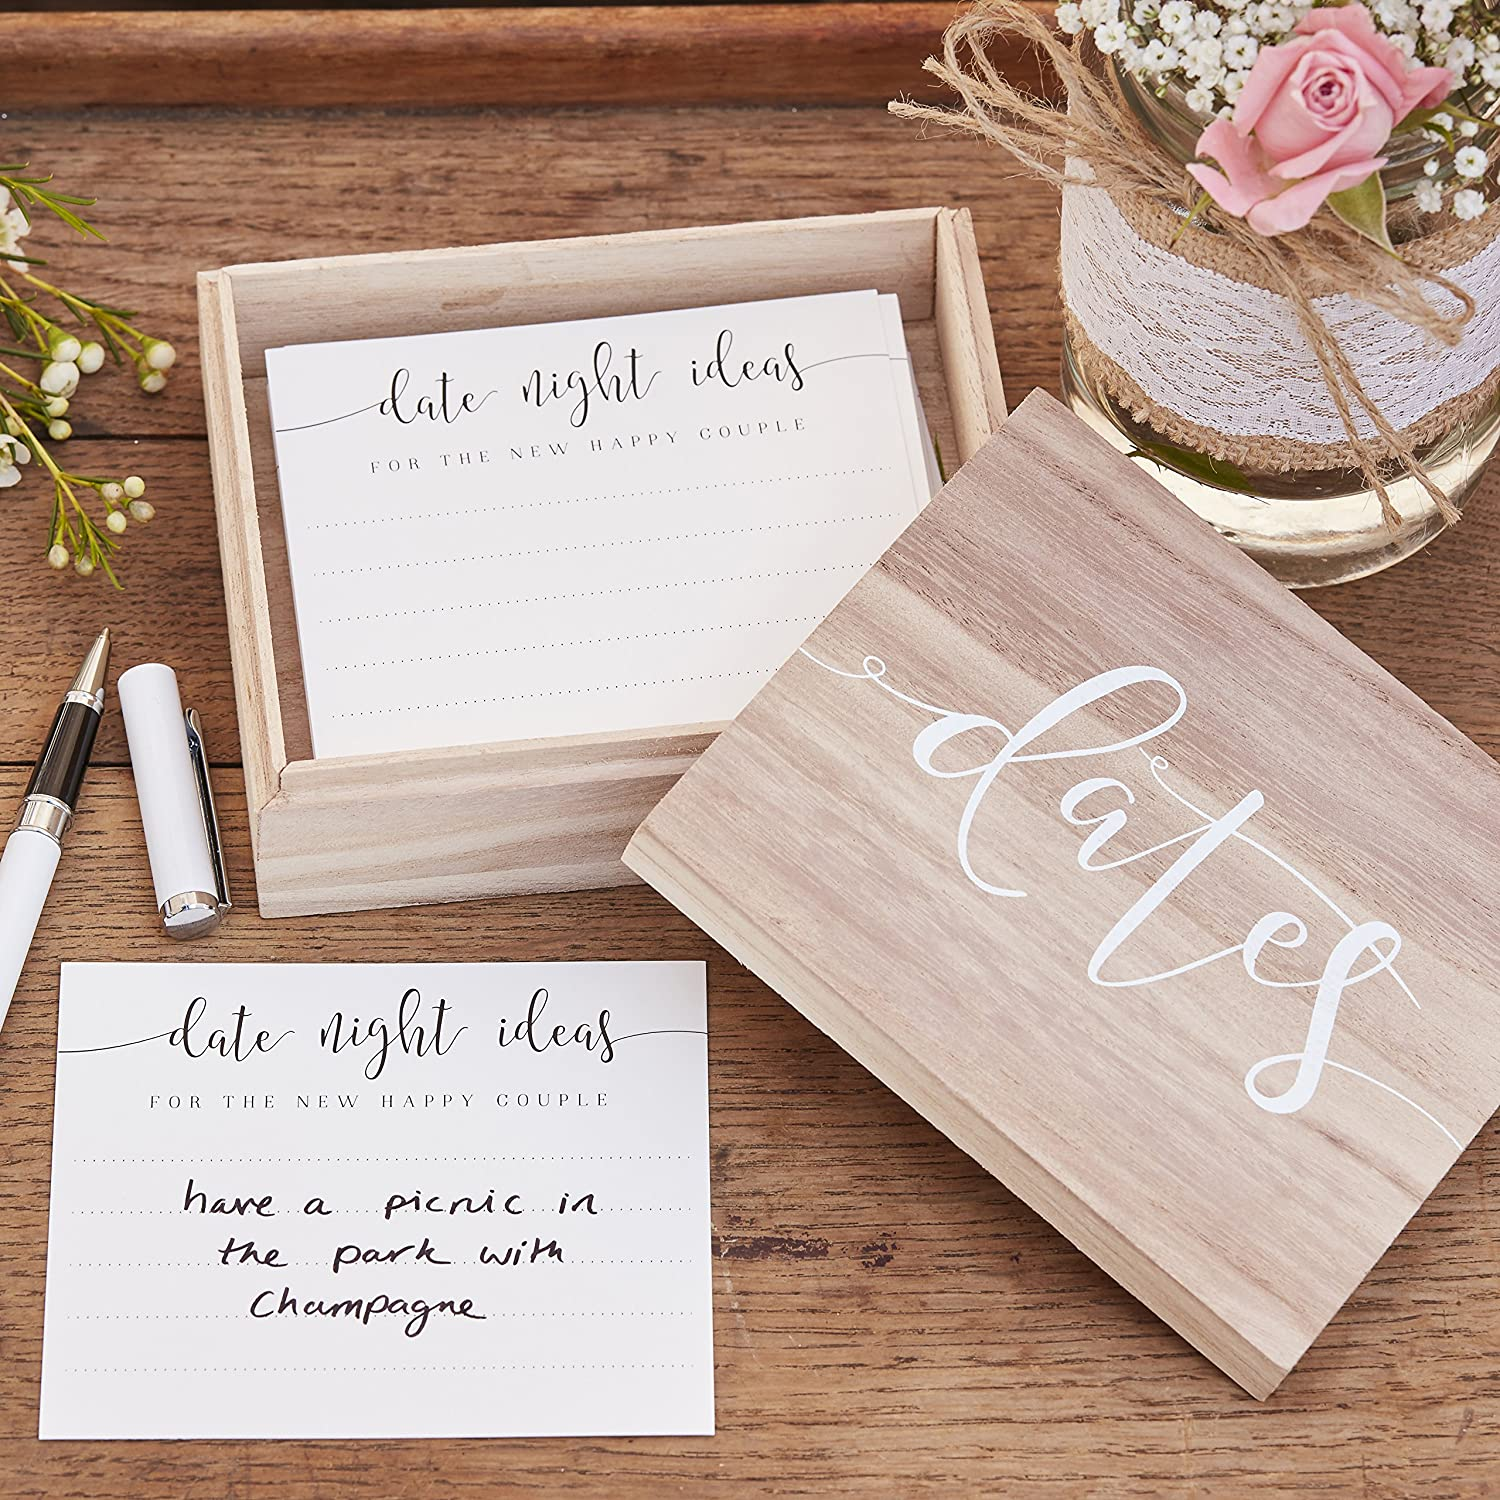 Ginger Ray Date Night Wooden Suggestion Box Alternative Wedding Guest Book, Rustic Country